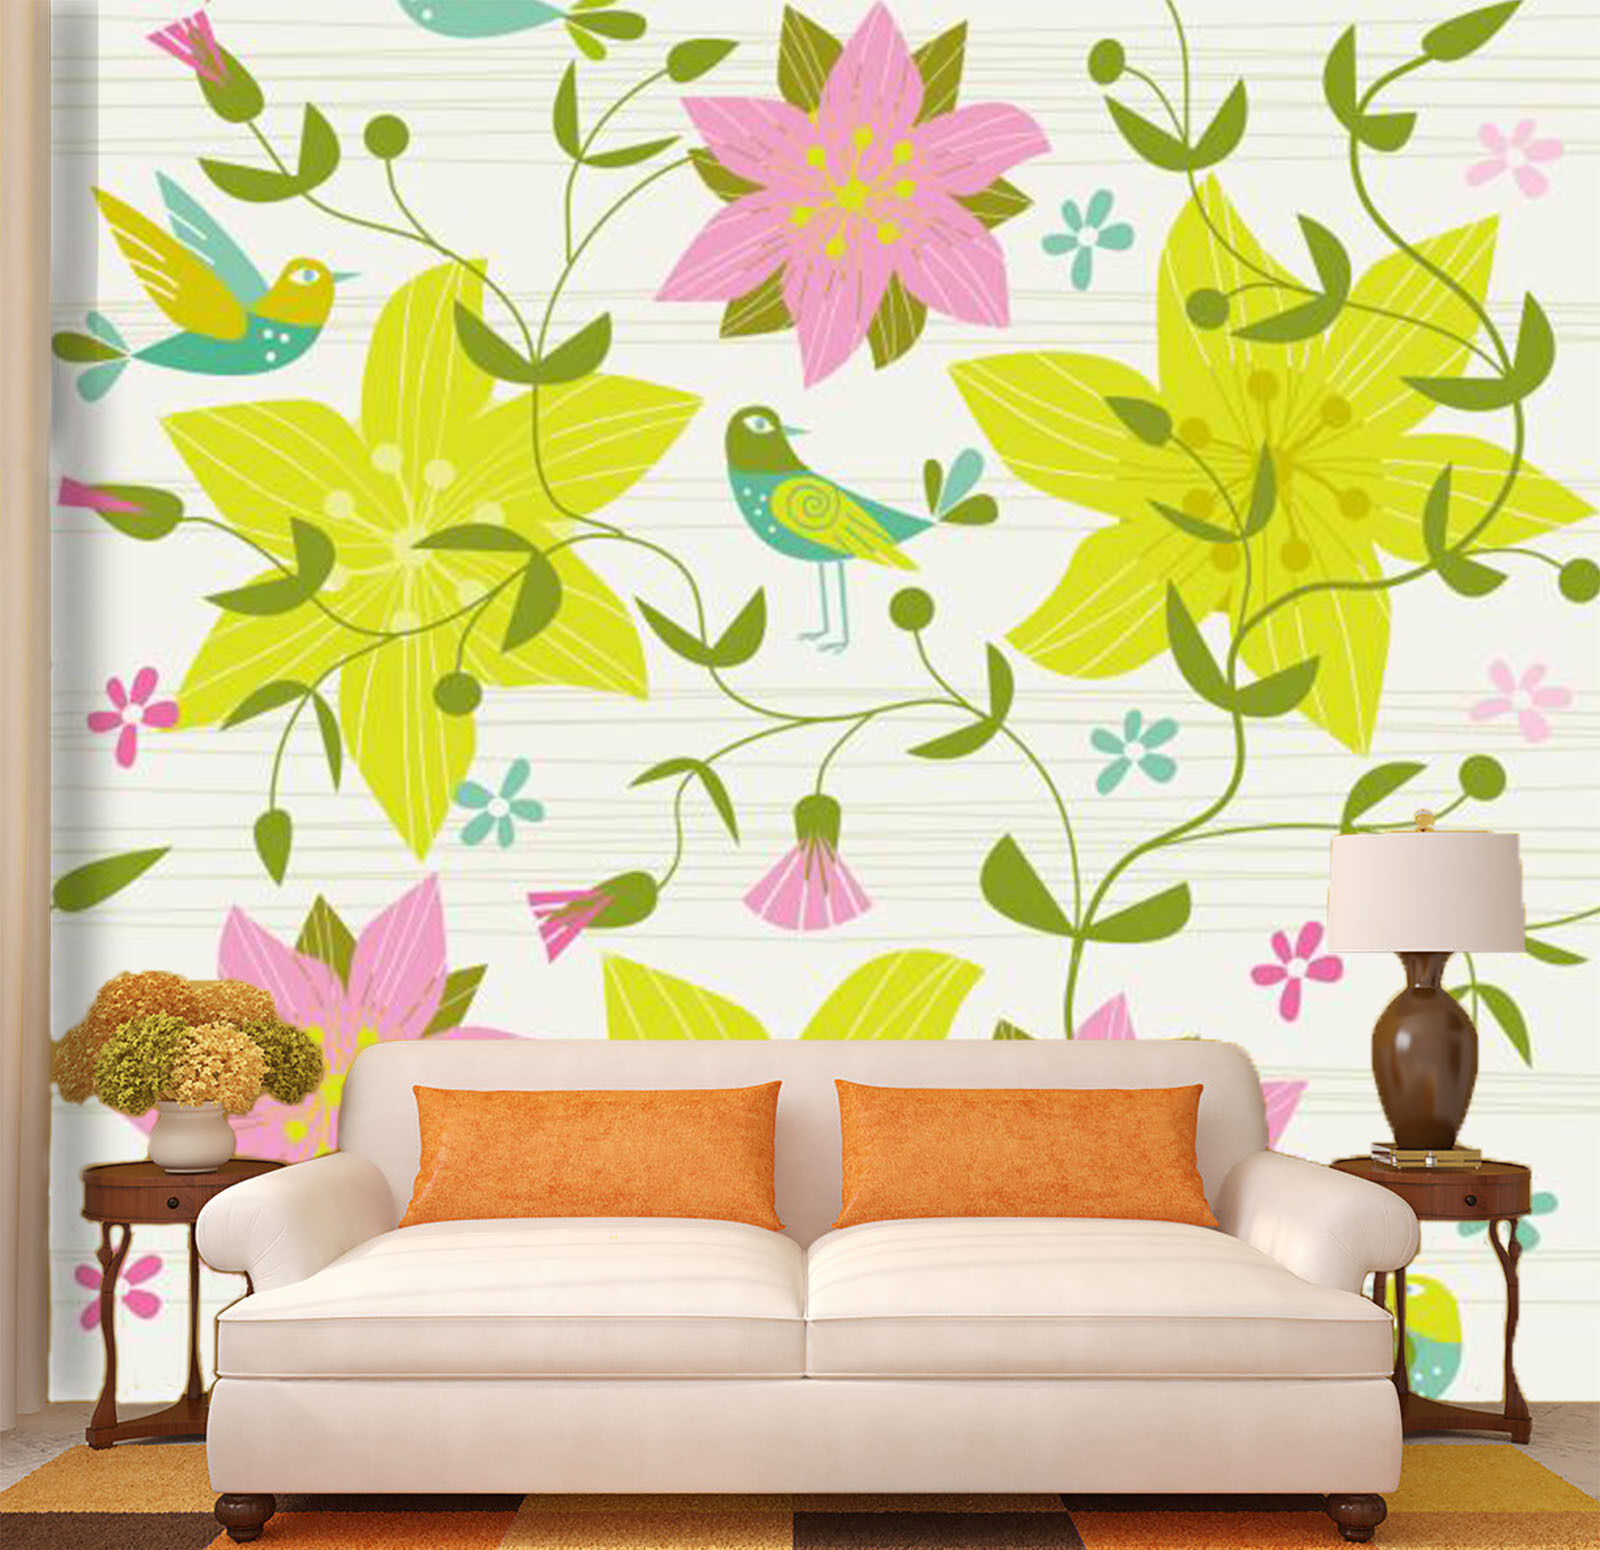 3D Flowers Vine Pattern 2694 Paper Wall Print Wall Decal Wall Deco Indoor Murals